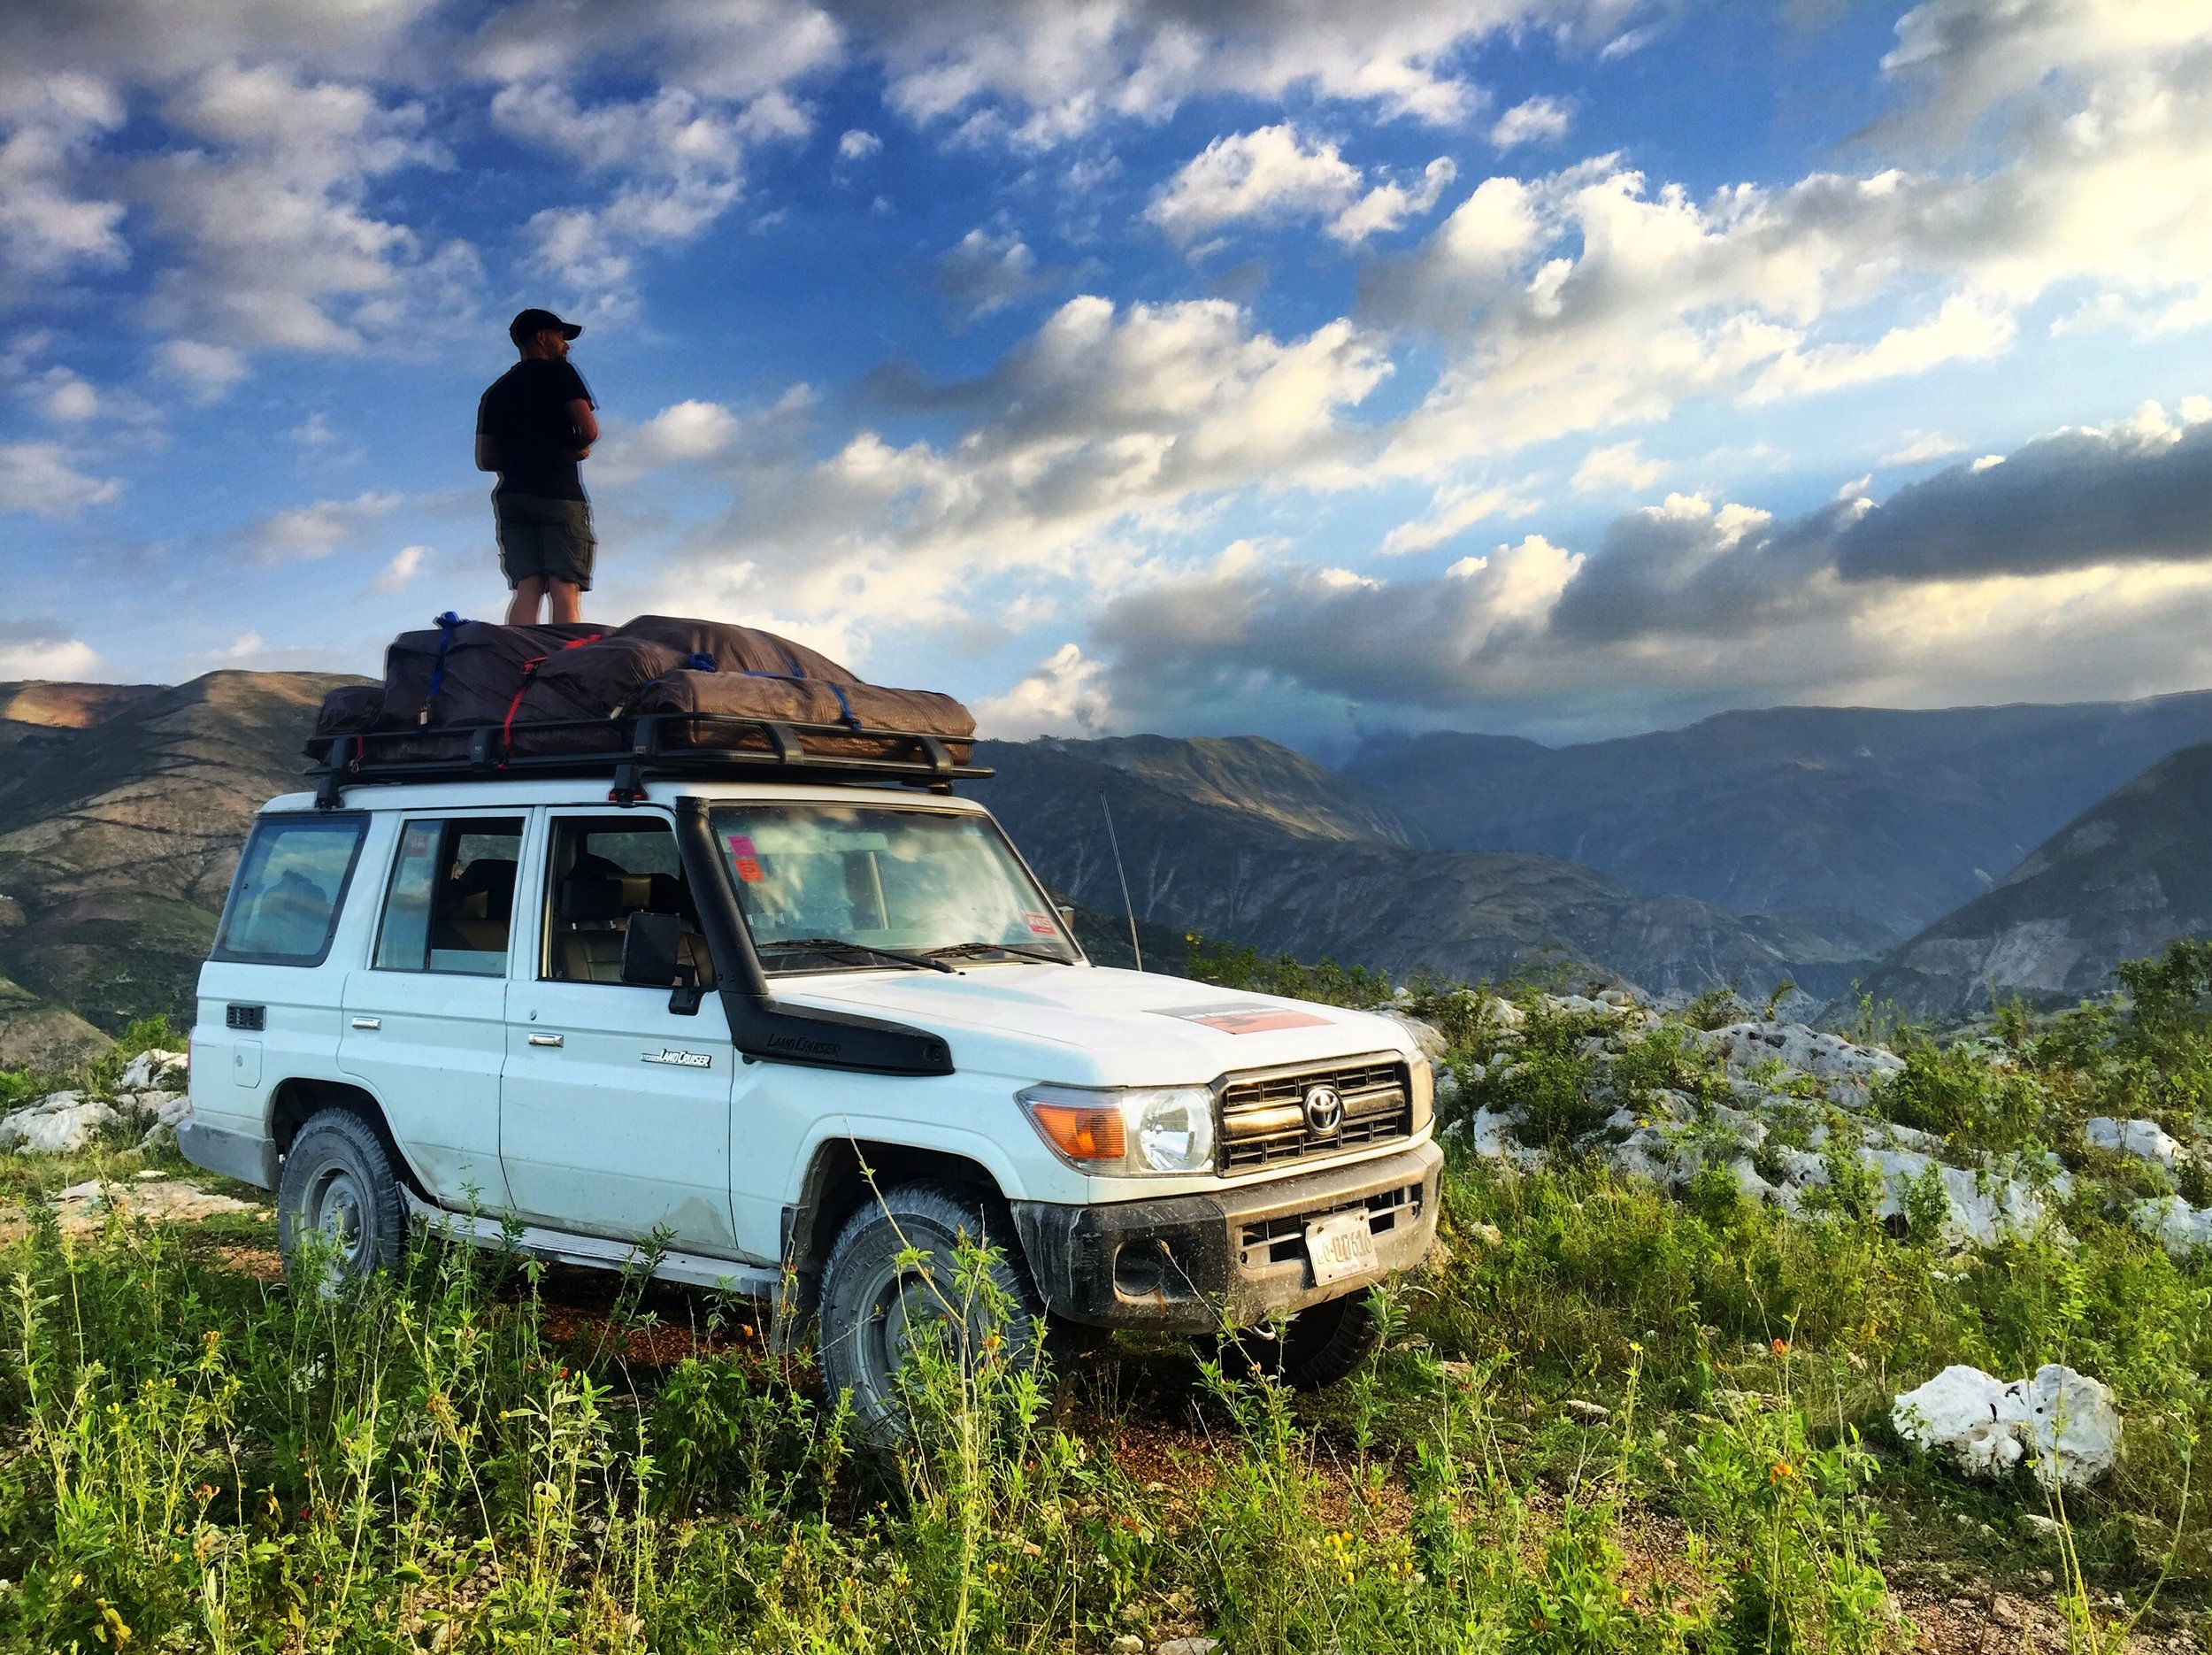 Director of Photography, Guido Ronge, standing on a Land Cruiser looking at the errosion damage to a river valley in Haiti